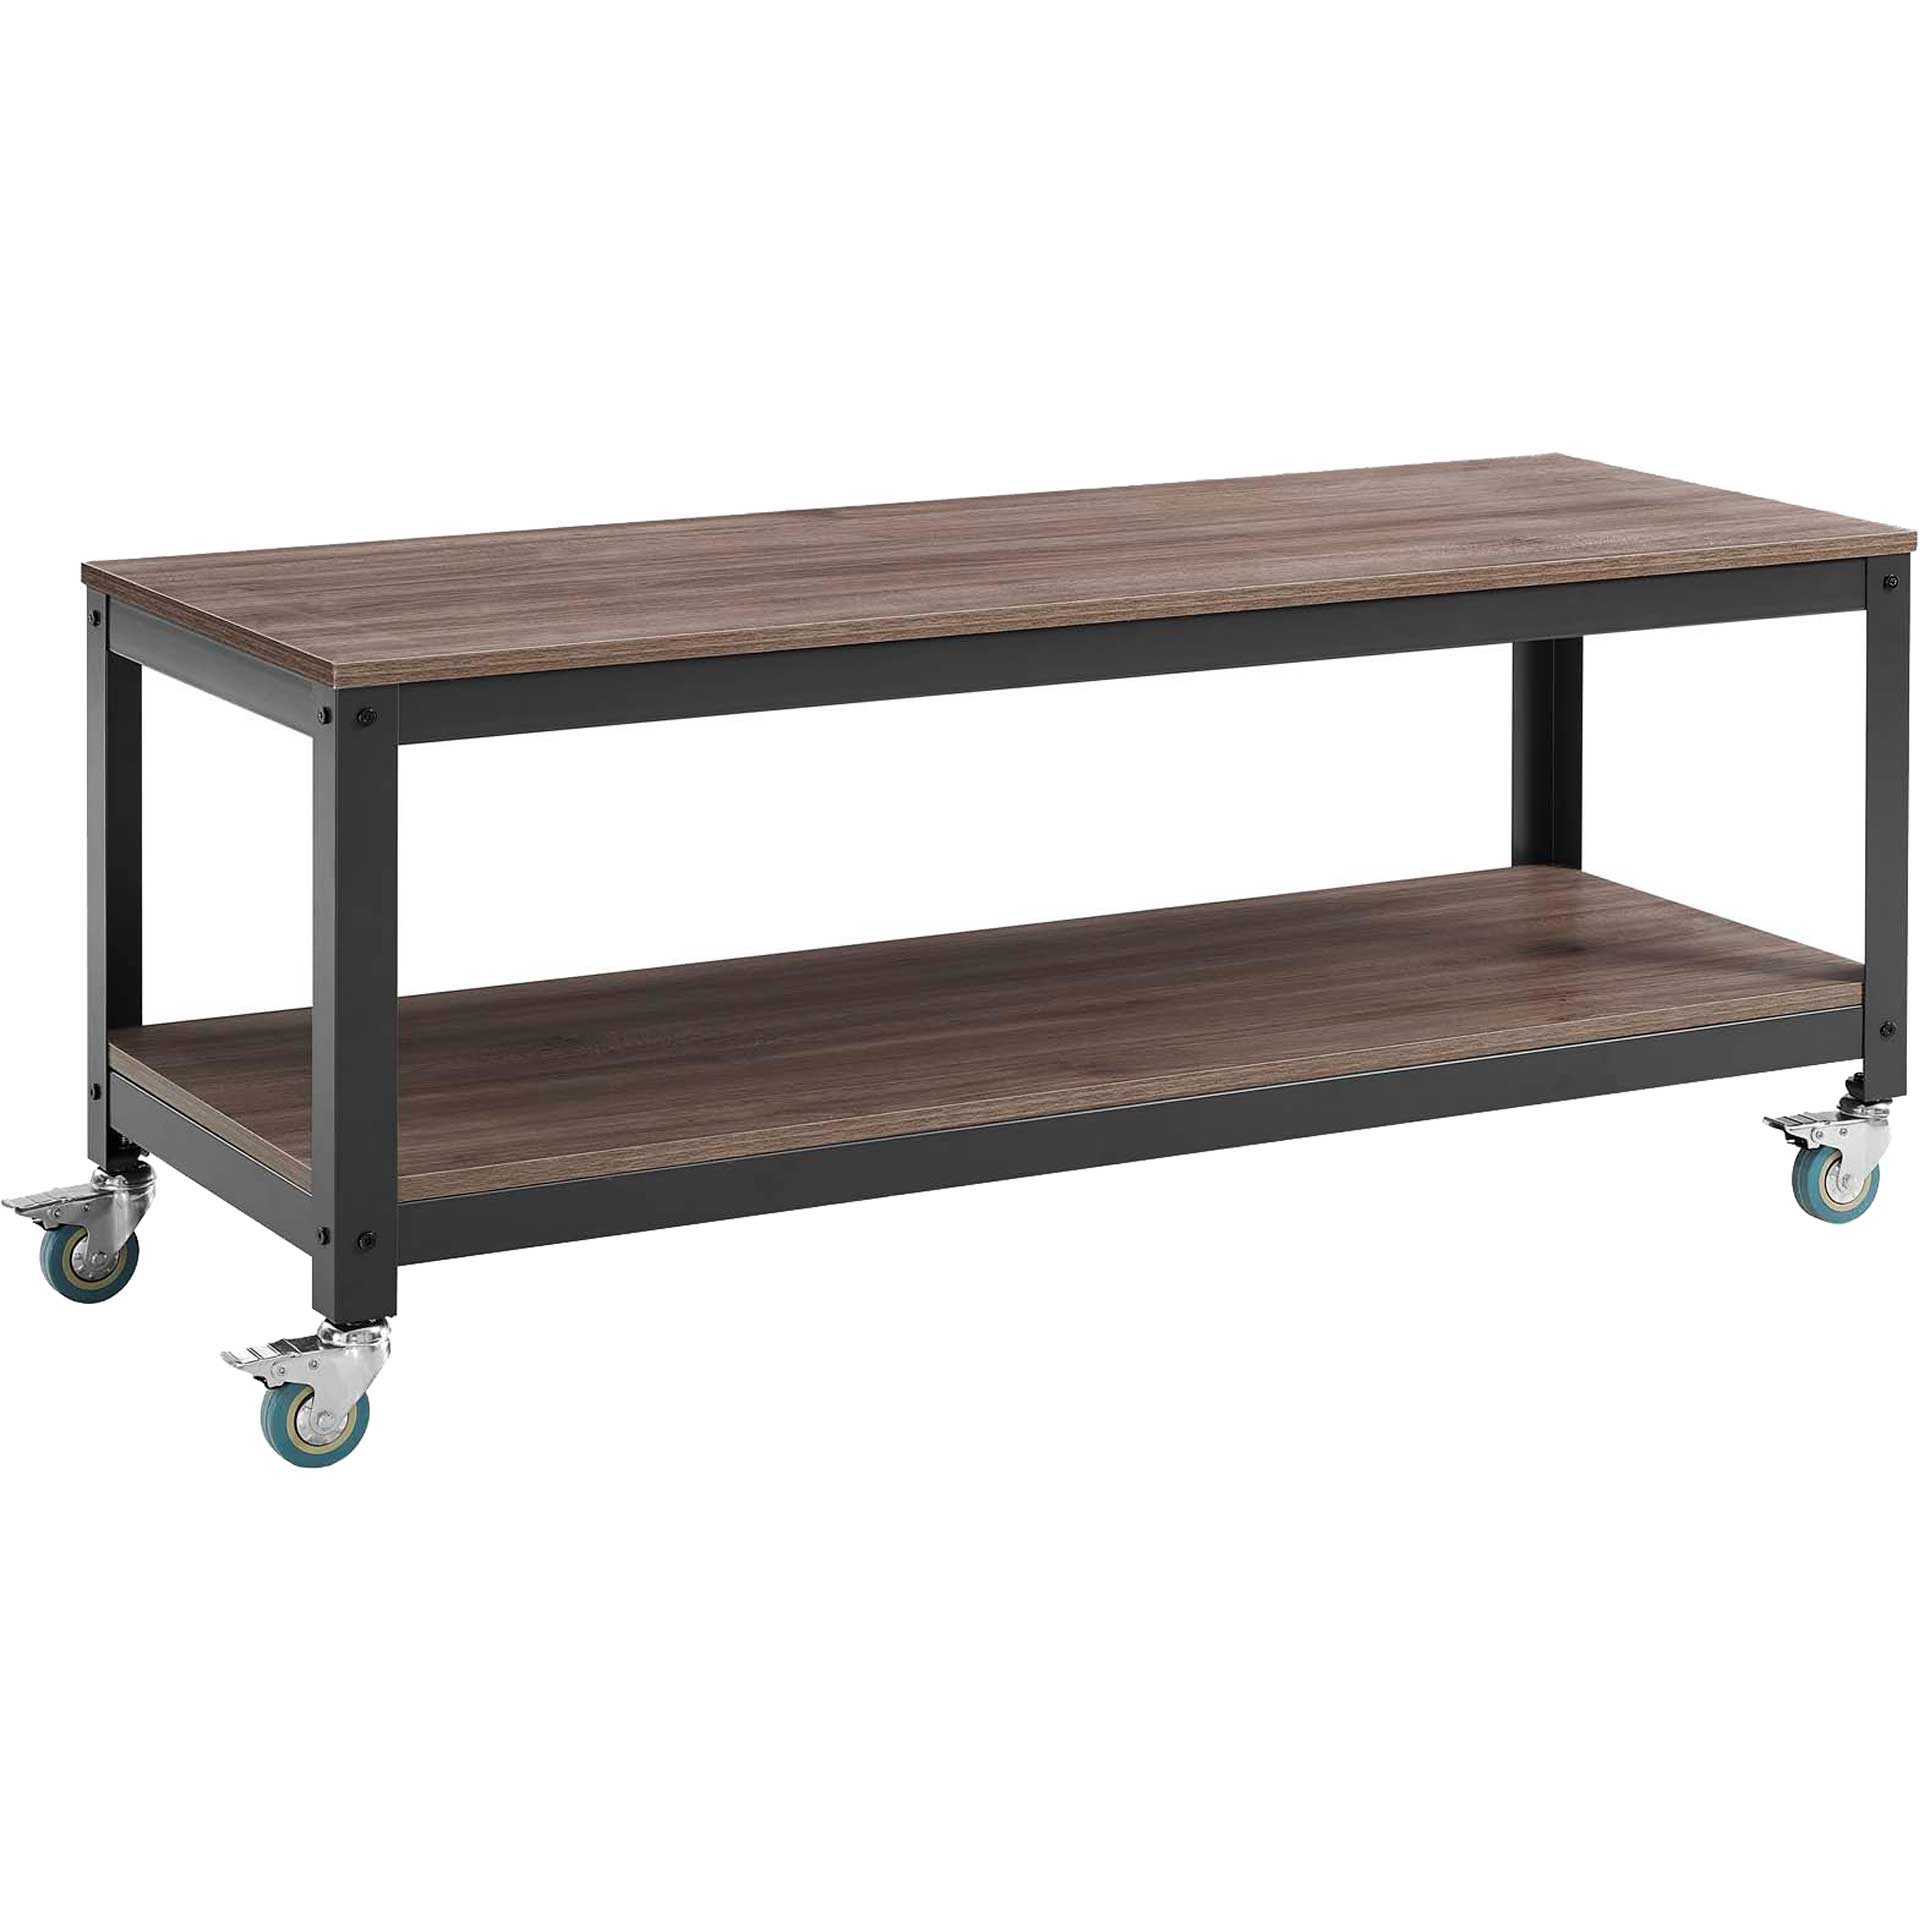 Ventura Tiered TV Stand Gray/Walnut